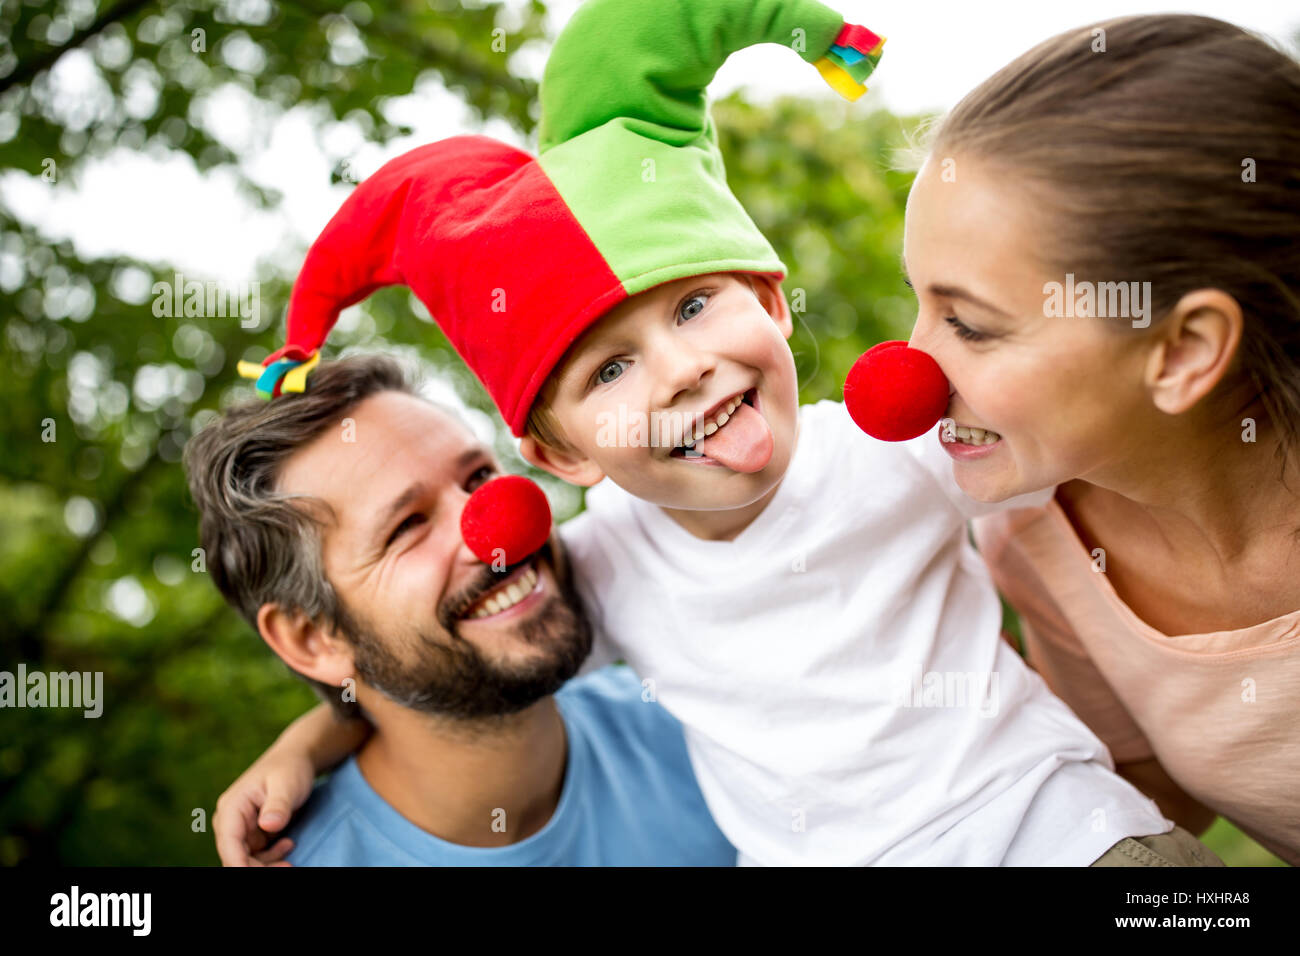 Child wearing fool cap and showing his tongue with his family - Stock Image